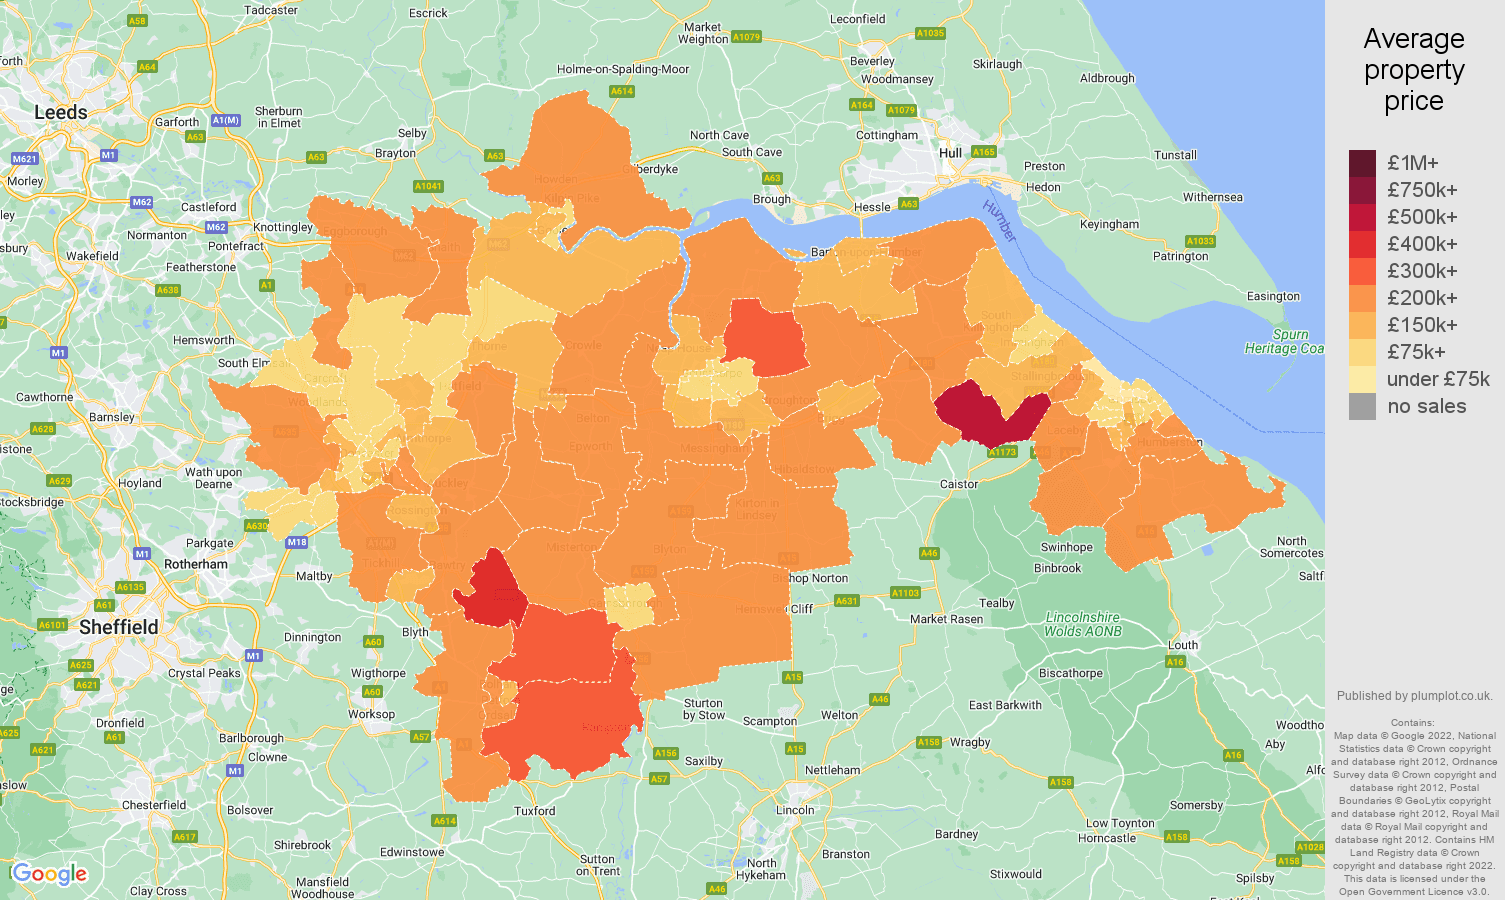 Doncaster house prices map